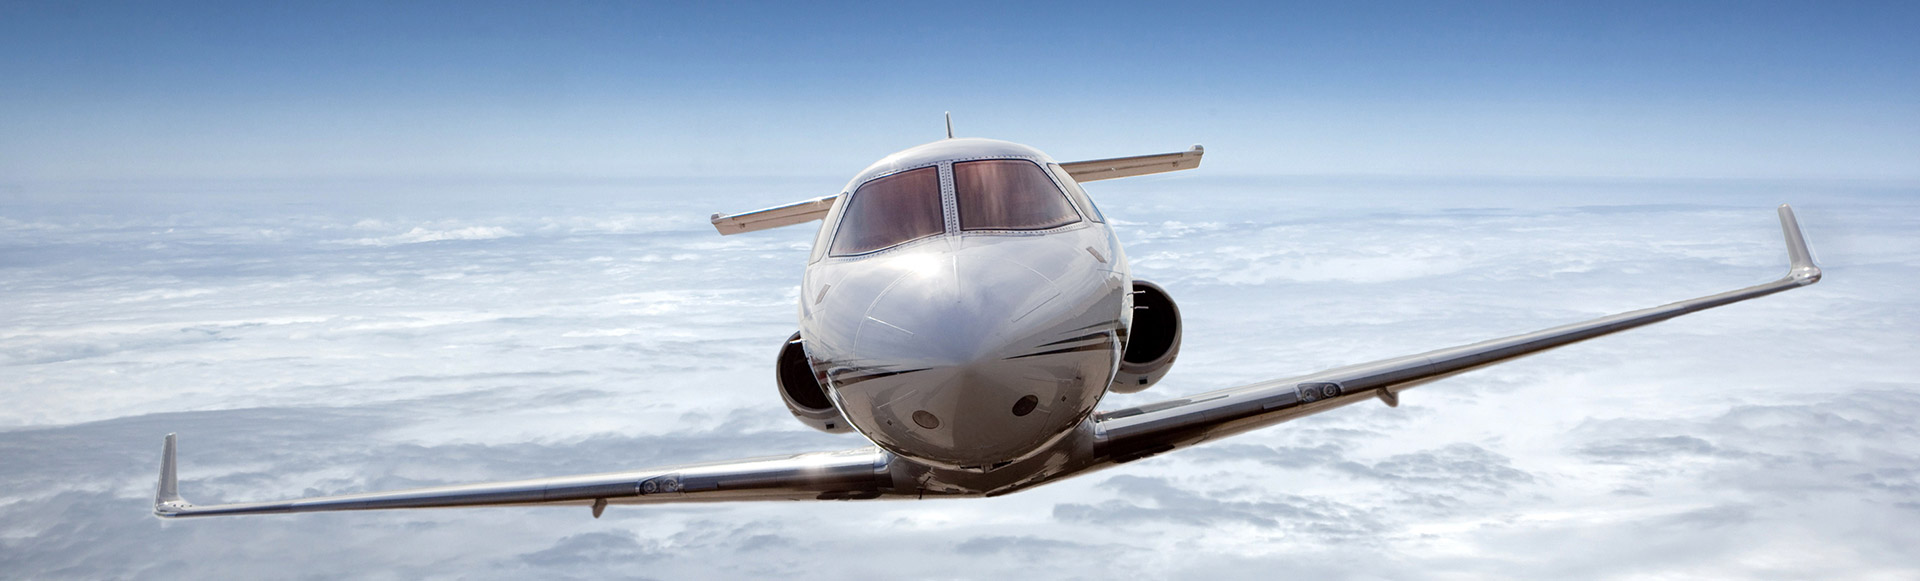 Hawthorne Global Aviation Services, Airport, FBO Management